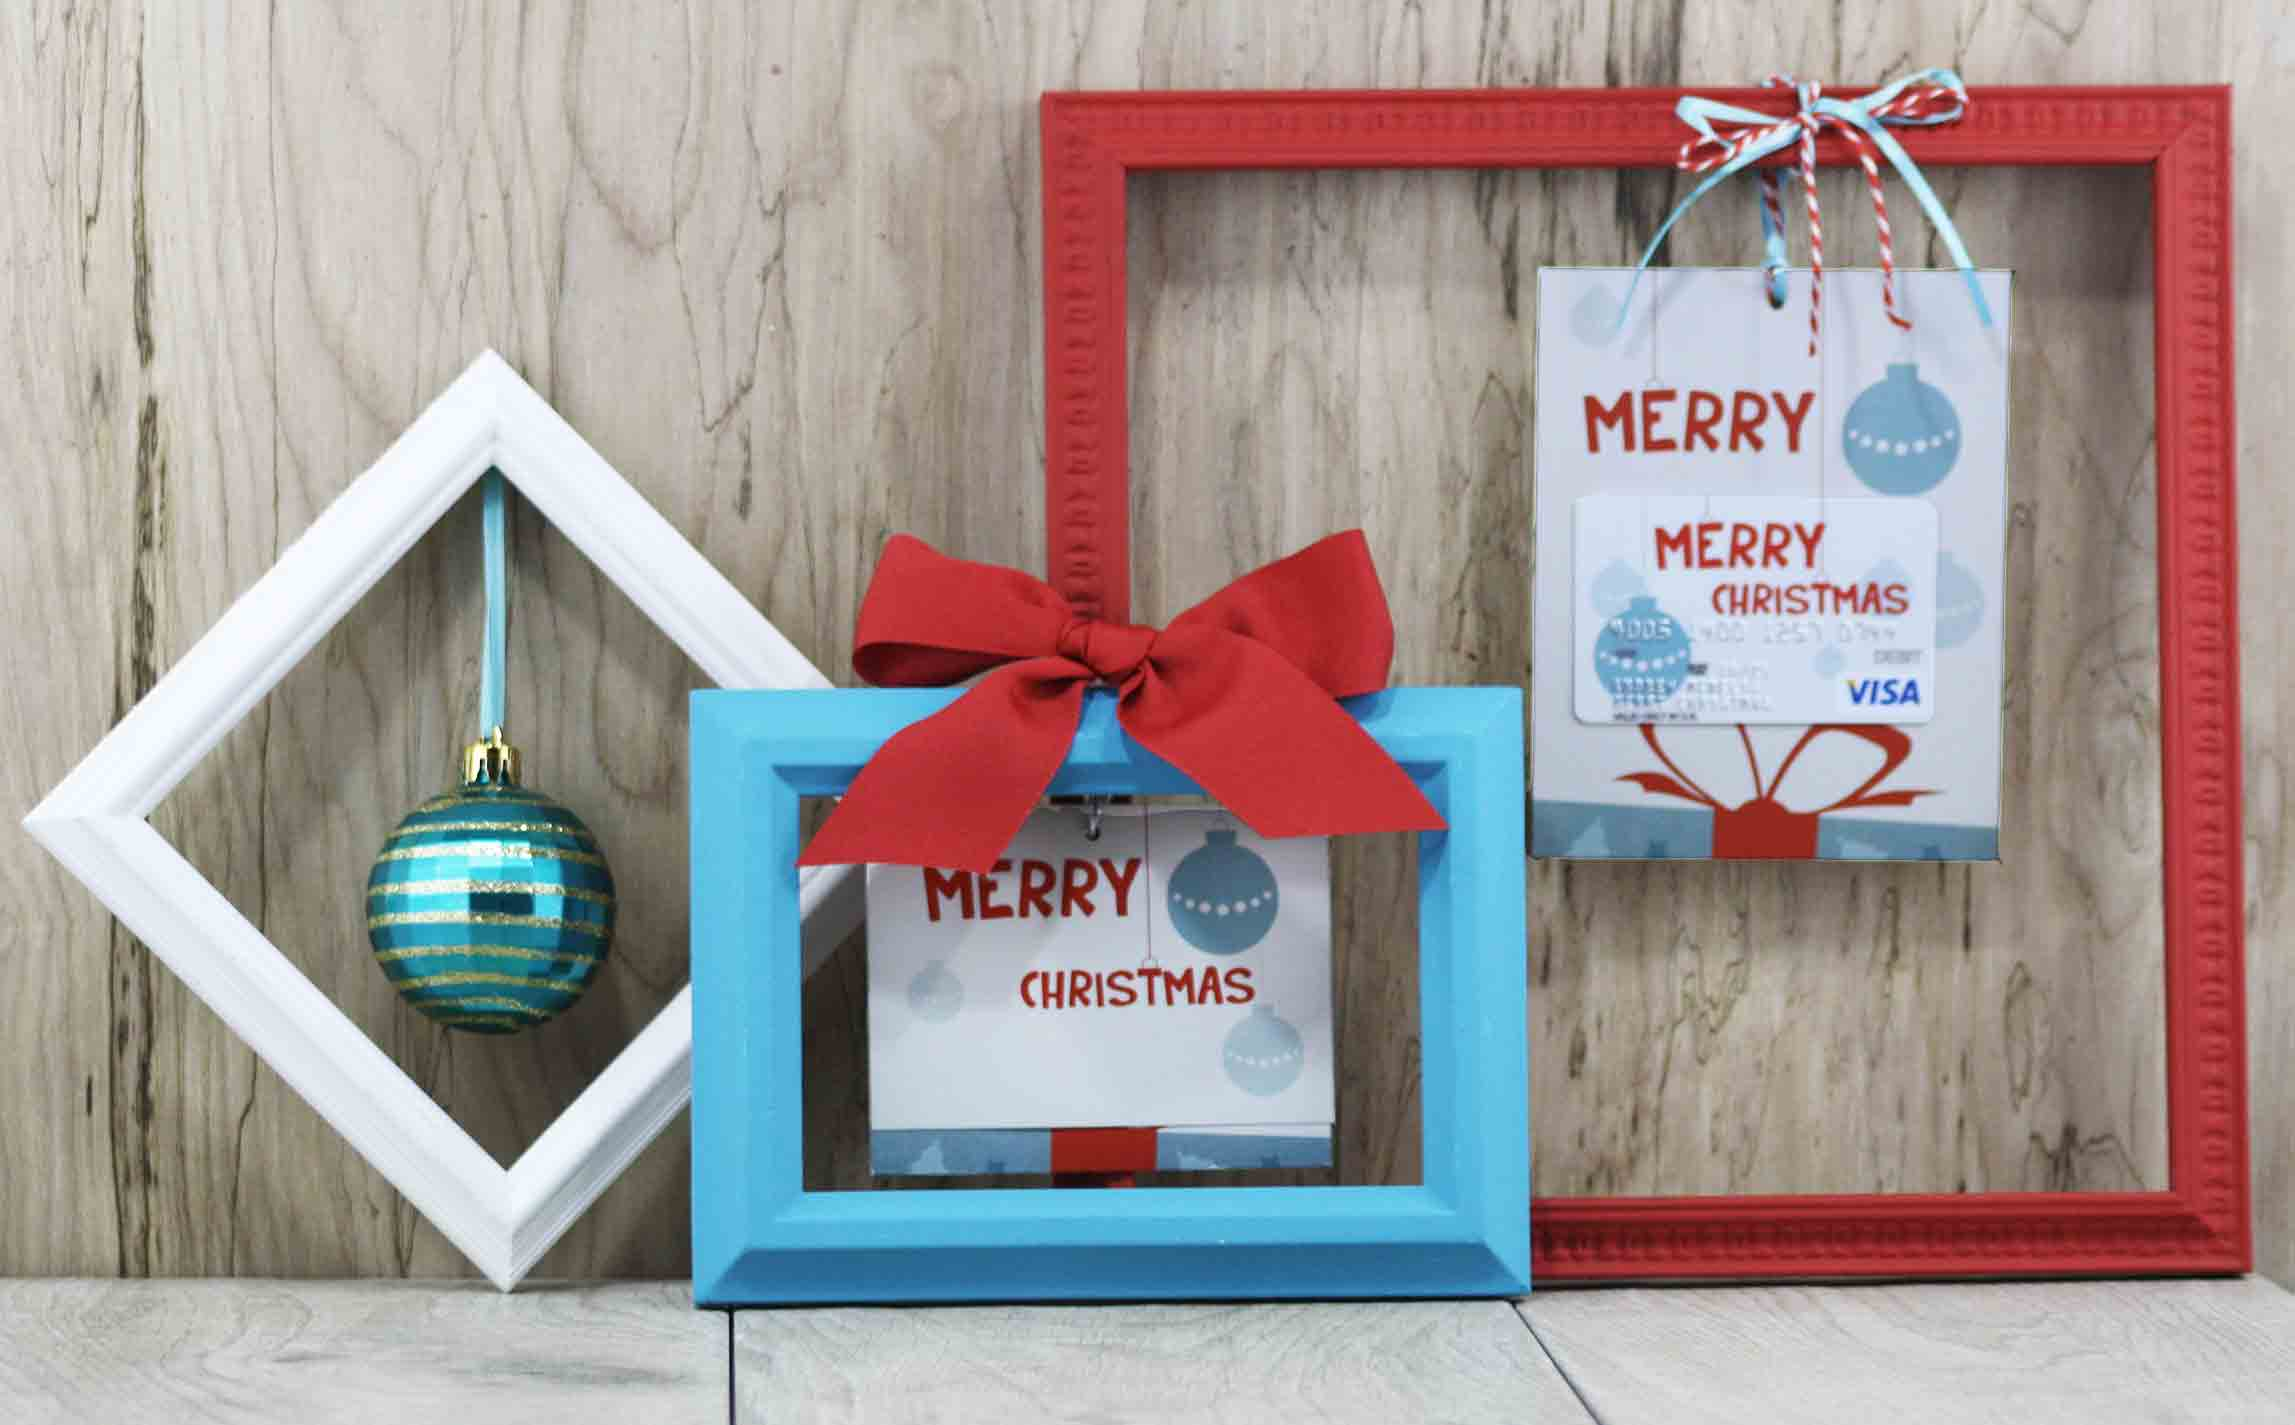 Christmas Money Cards Holder